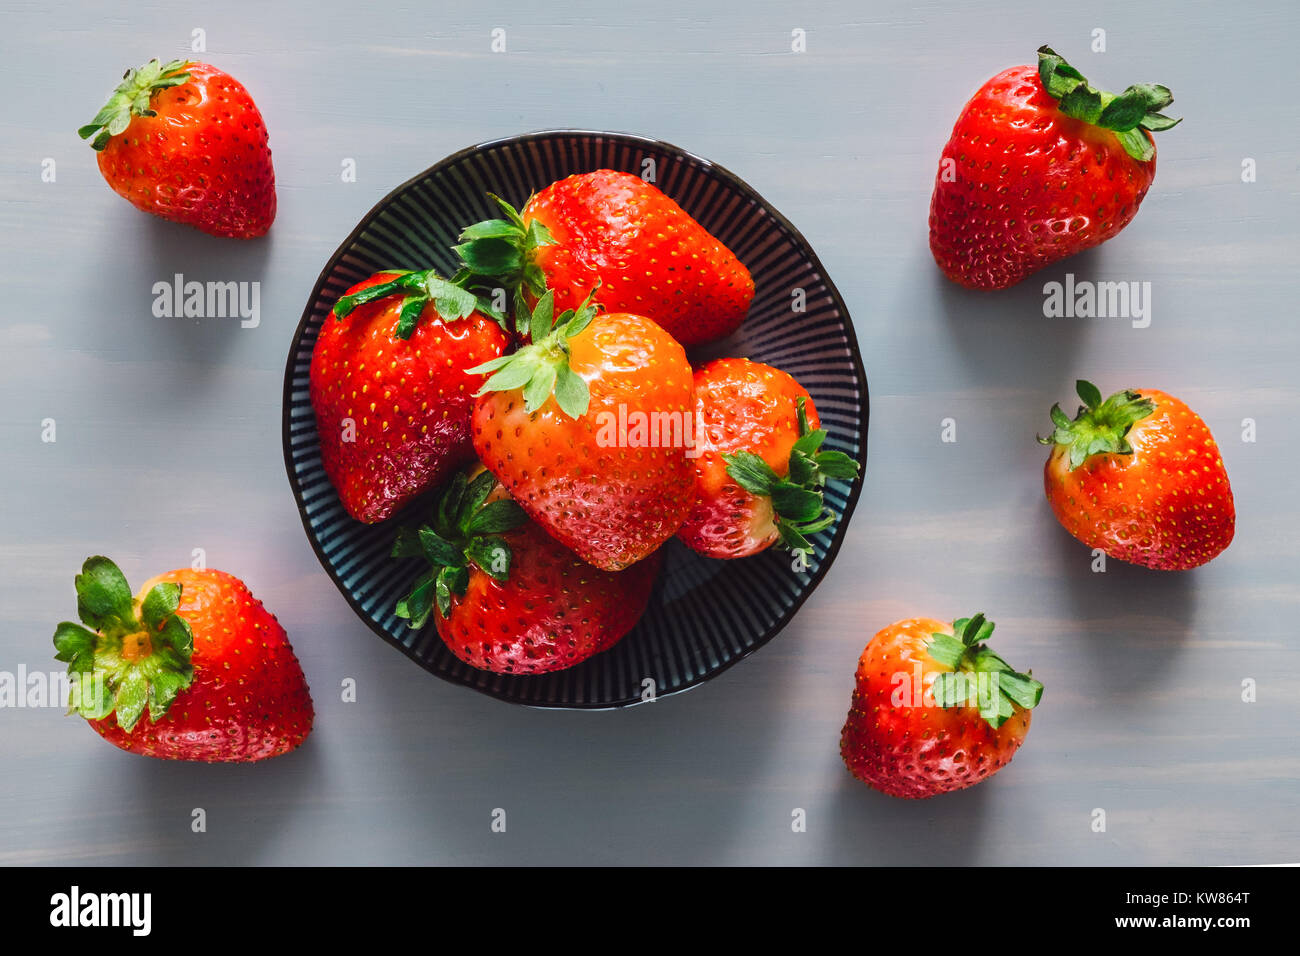 Bowl of Strawberries on Grey Table - Stock Image